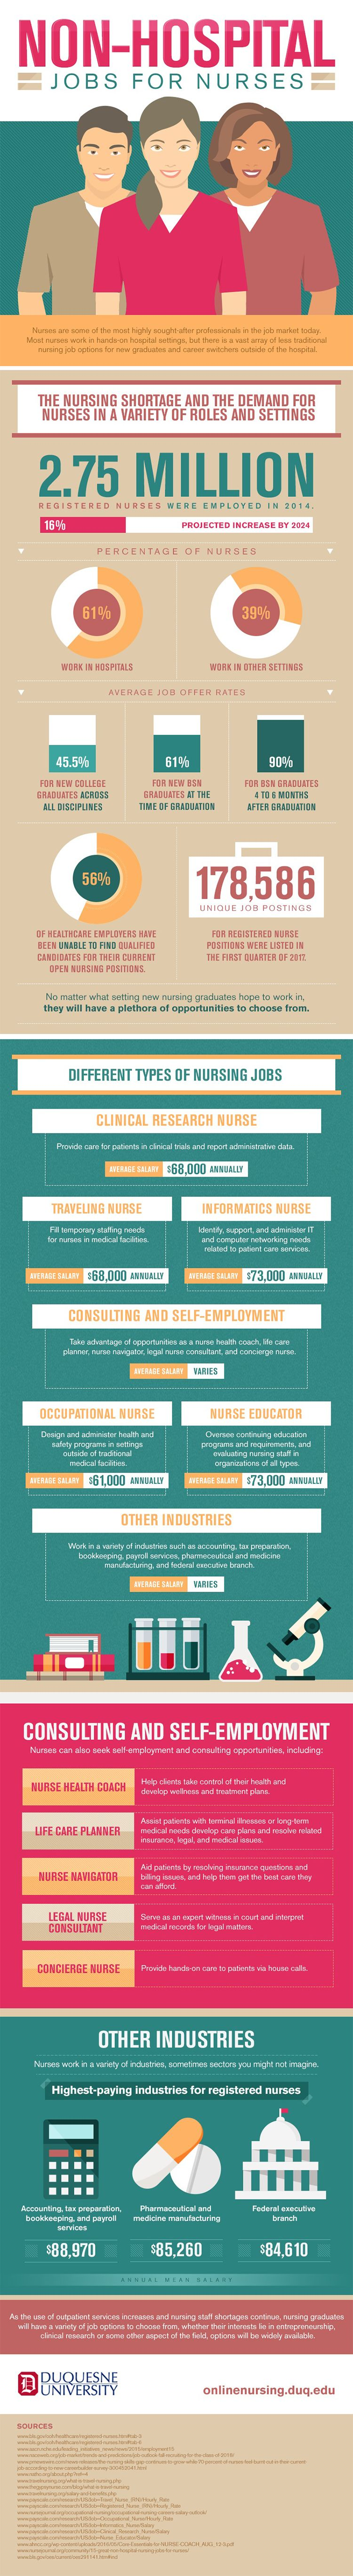 Non-Hospital Jobs for Nurses Infographic